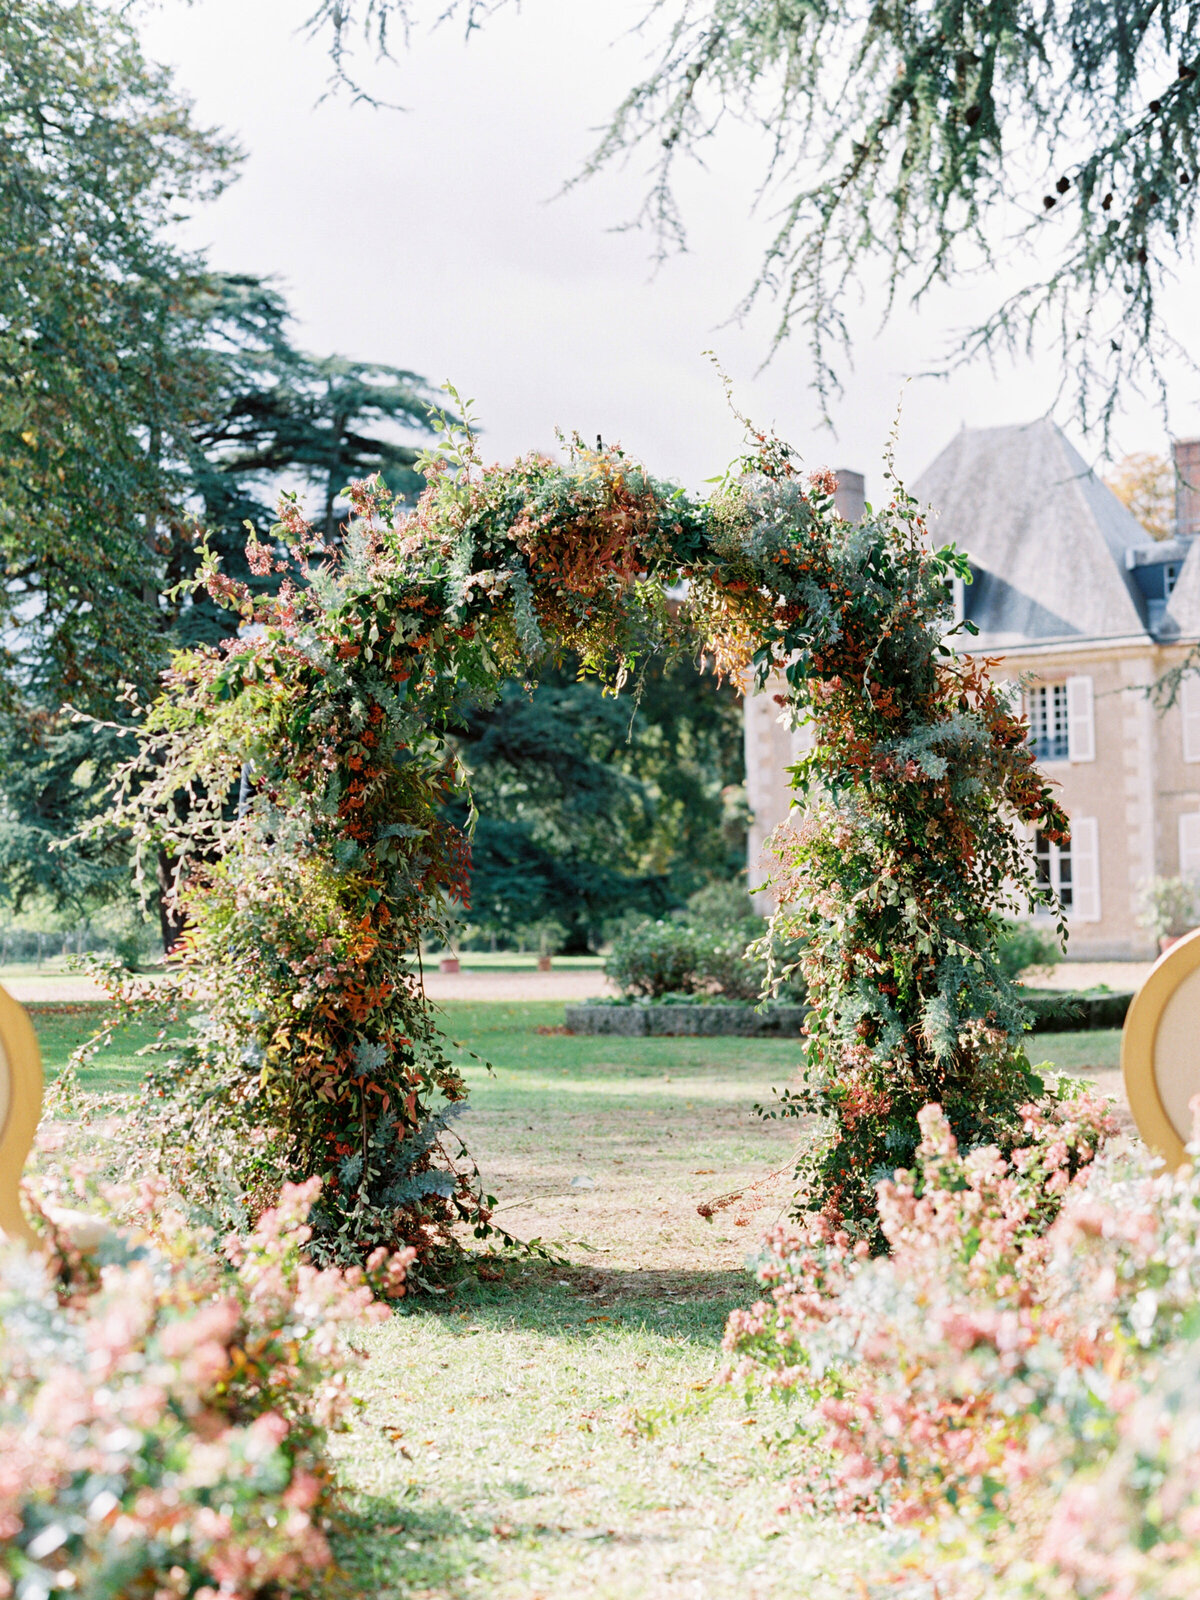 chateau-bouthonvilliers-wedding-paris-wedding-photographer-mackenzie-reiter-photography-63